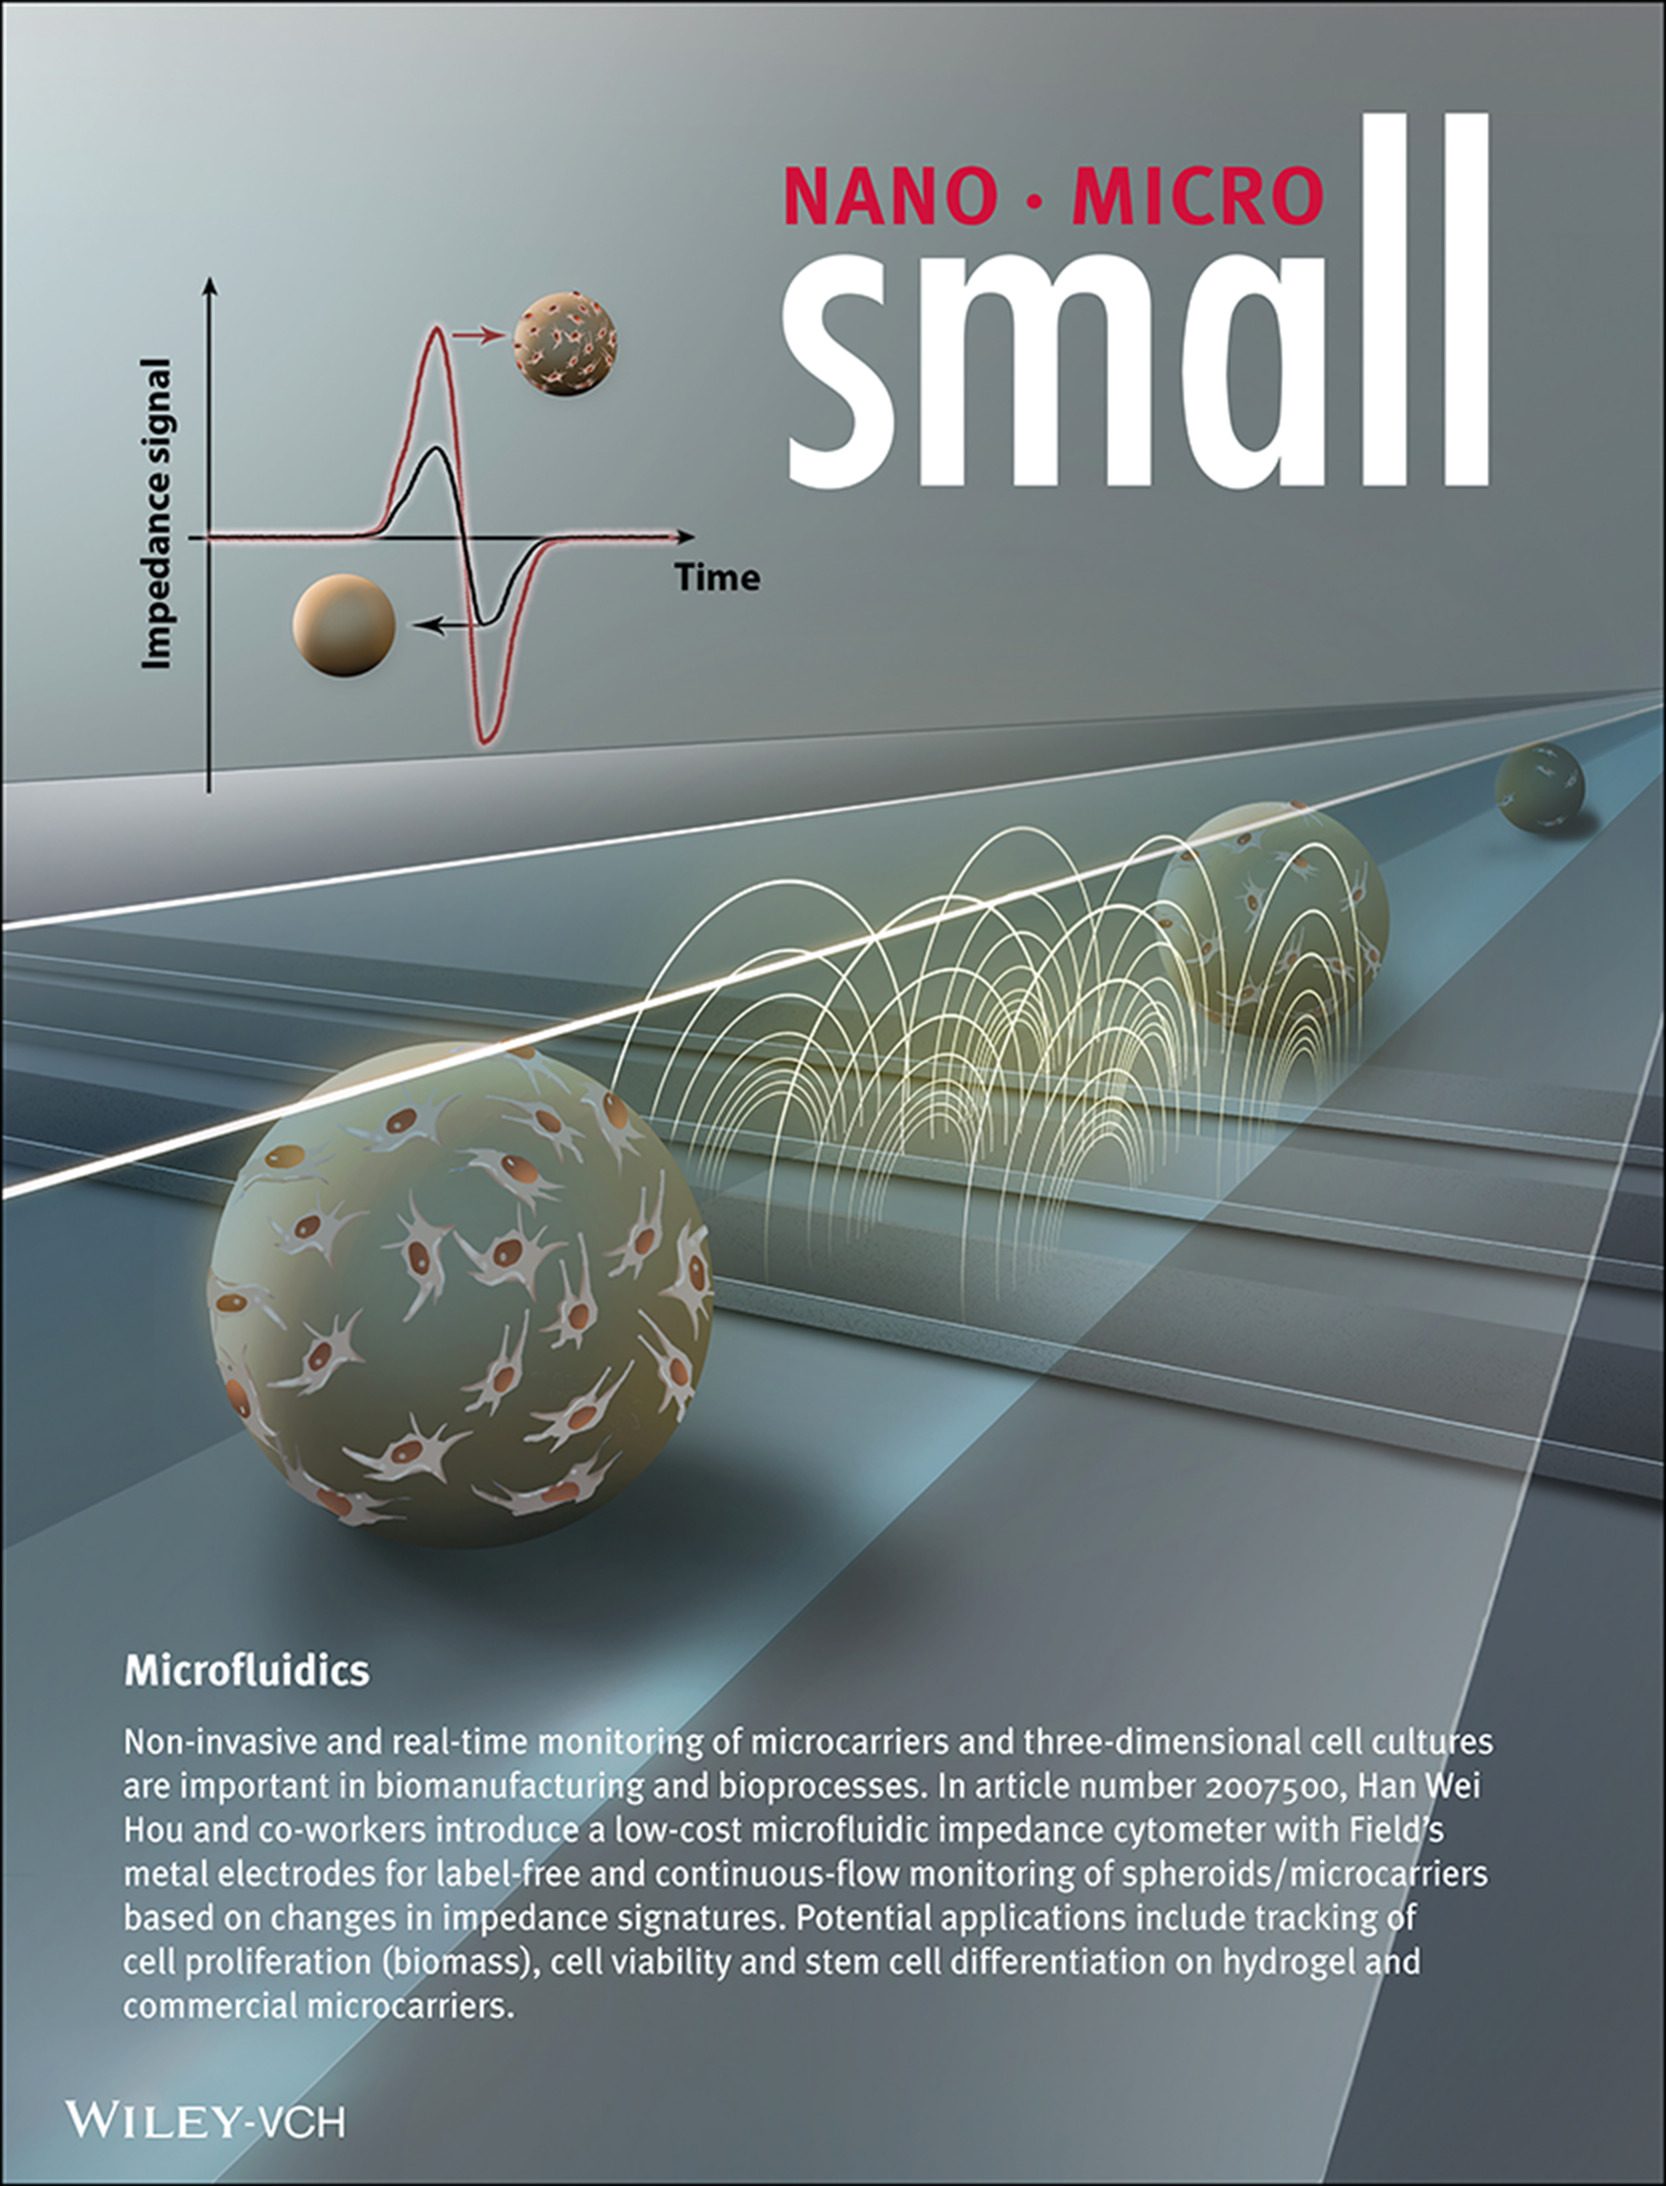 Small FRONTISPIECE - L. Gong et. al., 2021. Direct and Label‐Free Cell Status Monitoring of Spheroids and Microcarriers Using Microfluidic Impedance Cytometry.